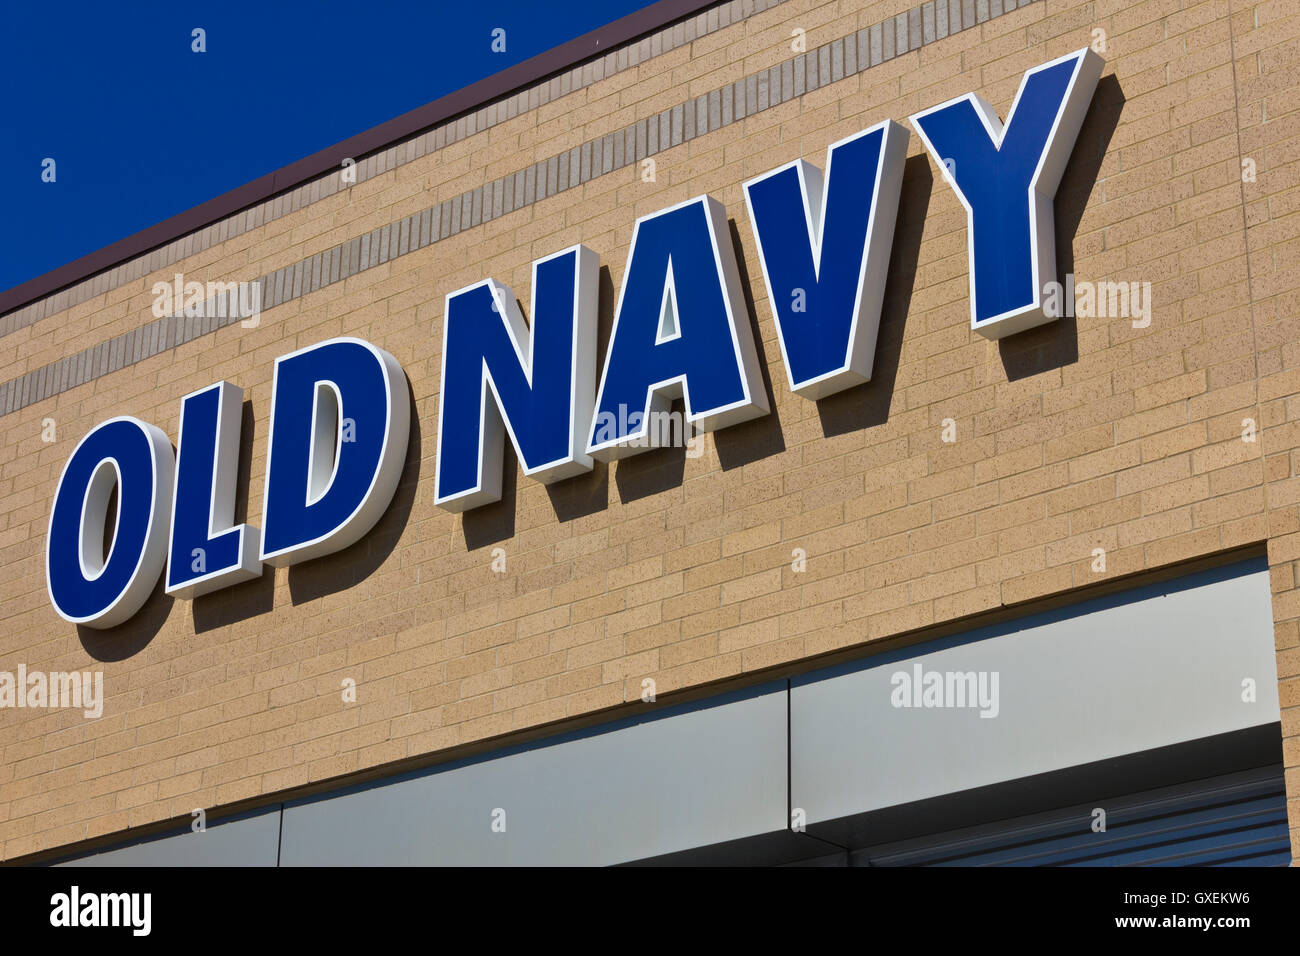 34cfab0550c Indianapolis - Circa June 2016  Old Navy Retail Mall Location. Old Navy is a